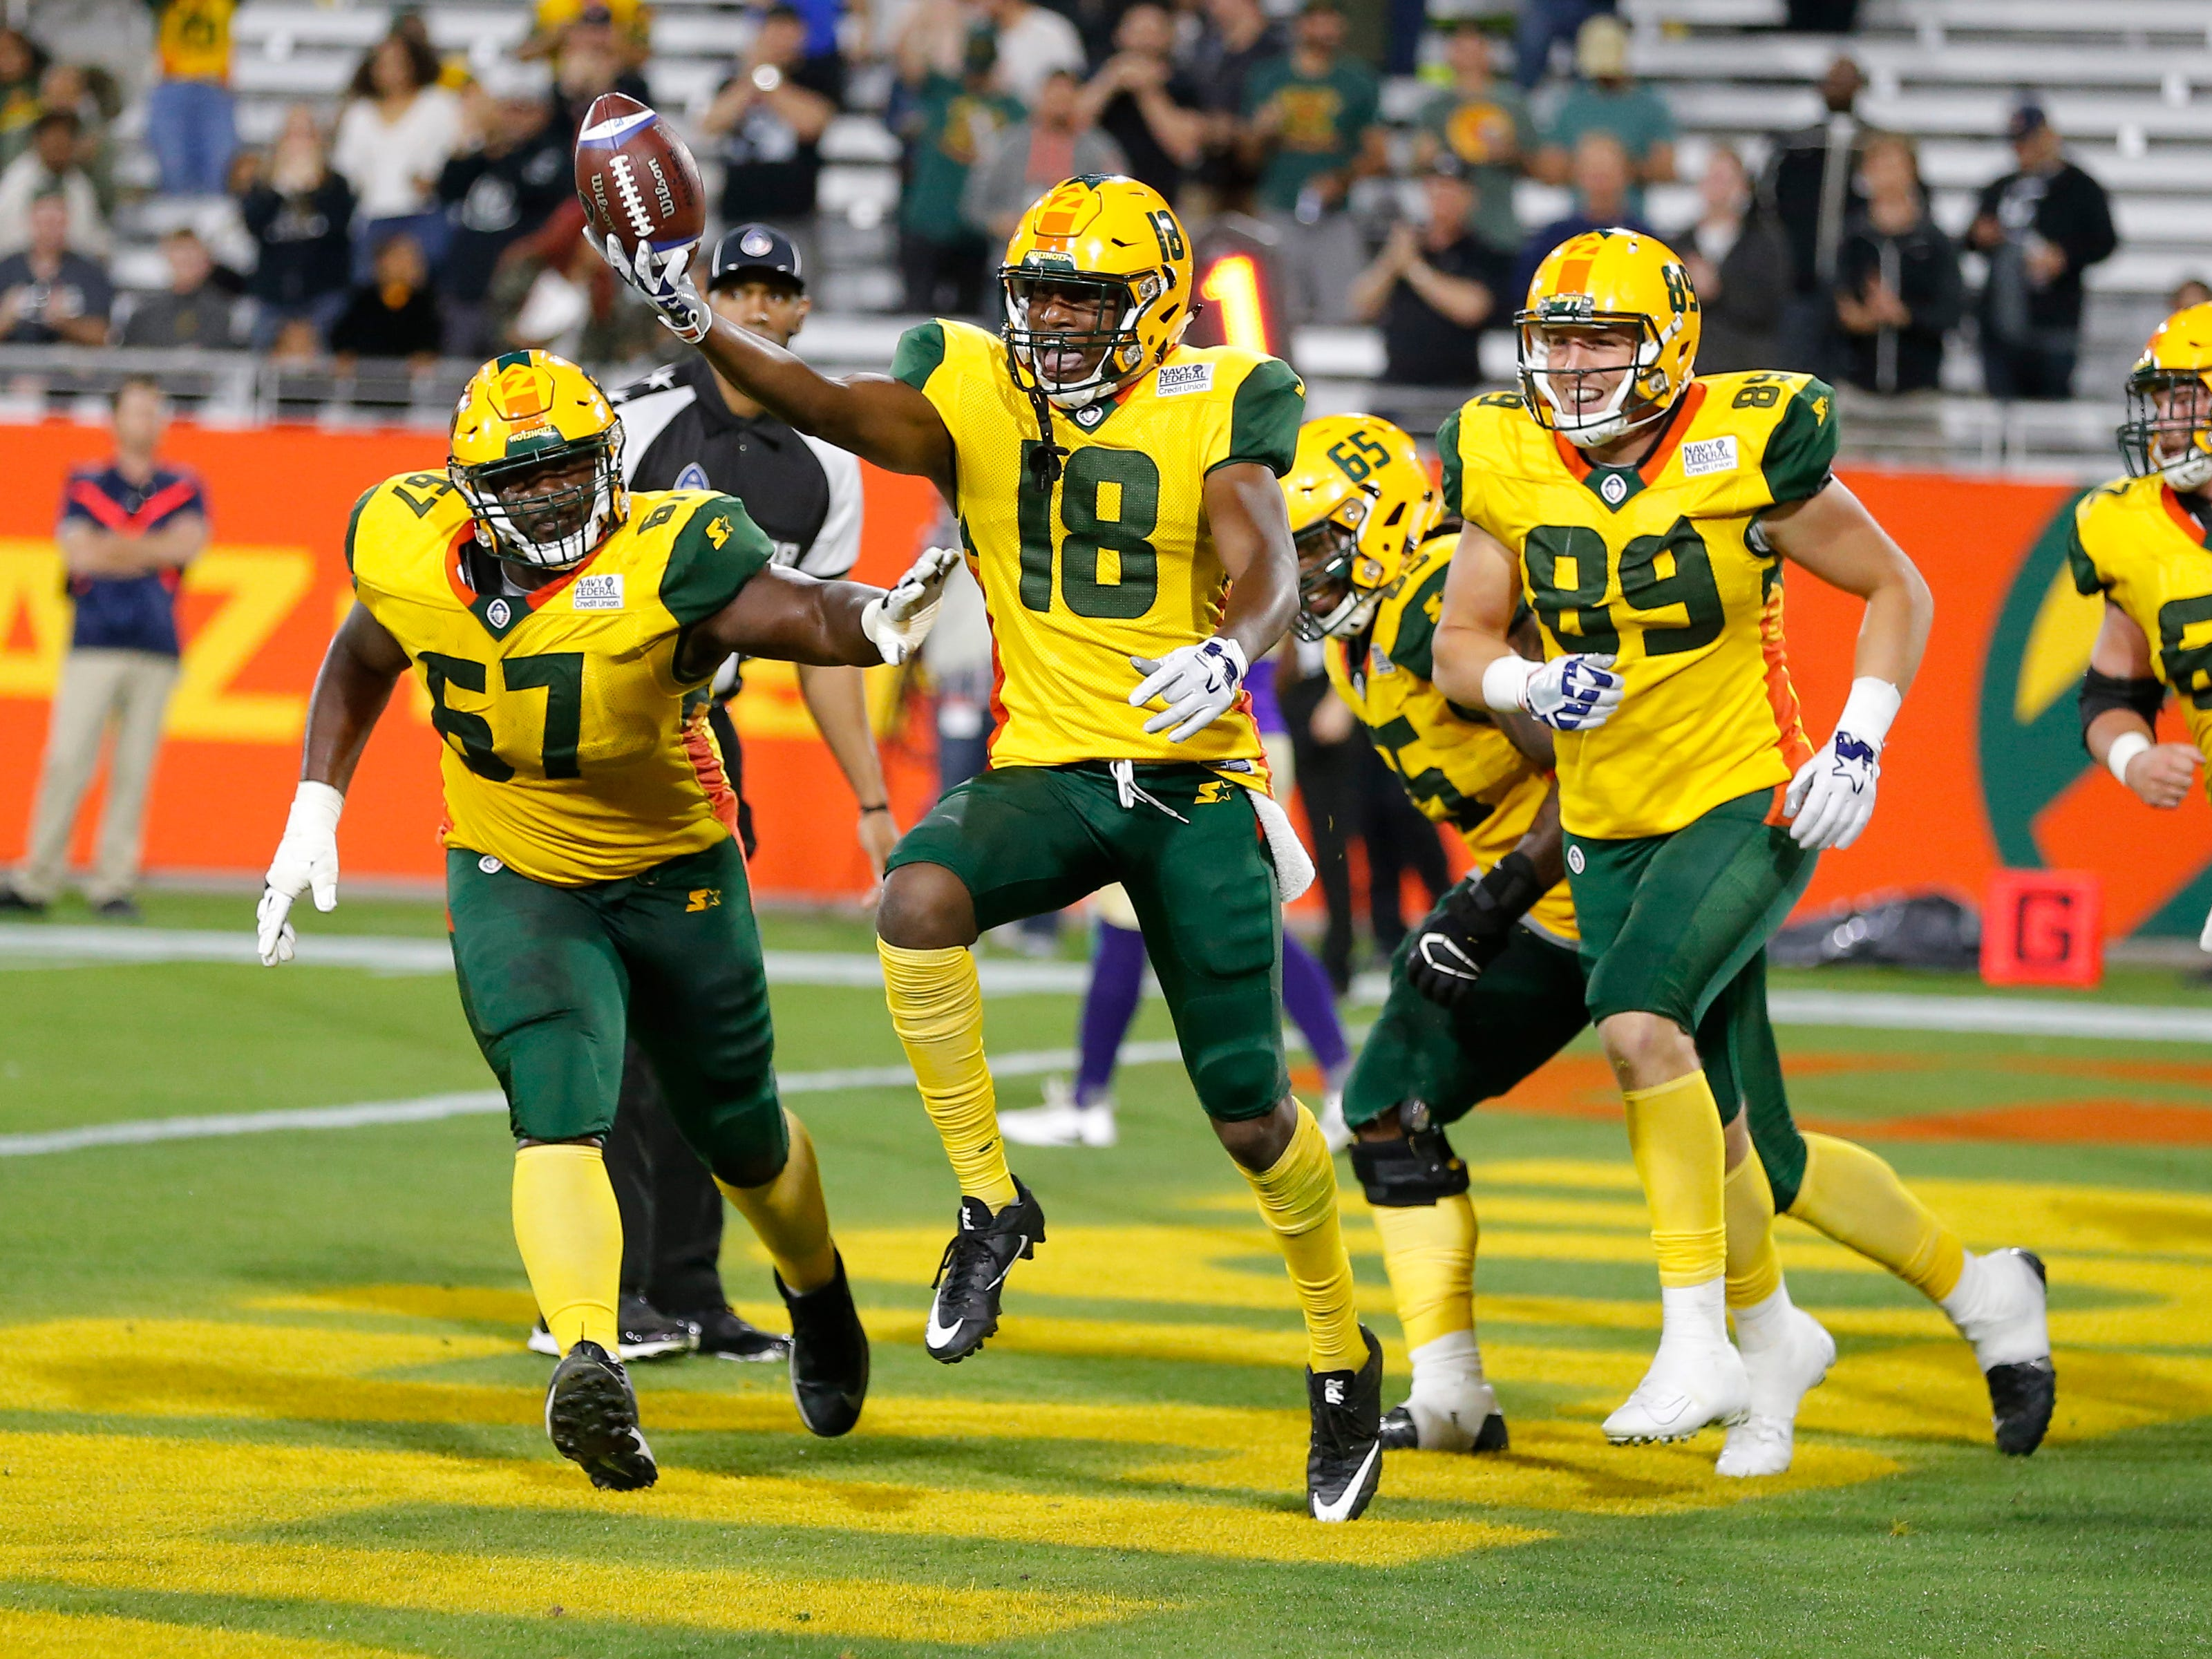 Arizona Hotshots wide receiver Marquis Bundy (18) celebrates after scoring a two point conversion in the second half during an AAF football game against the Atlanta Legends, Sunday, March 3, 2019, at Sun Devil Stadium in Phoenix.